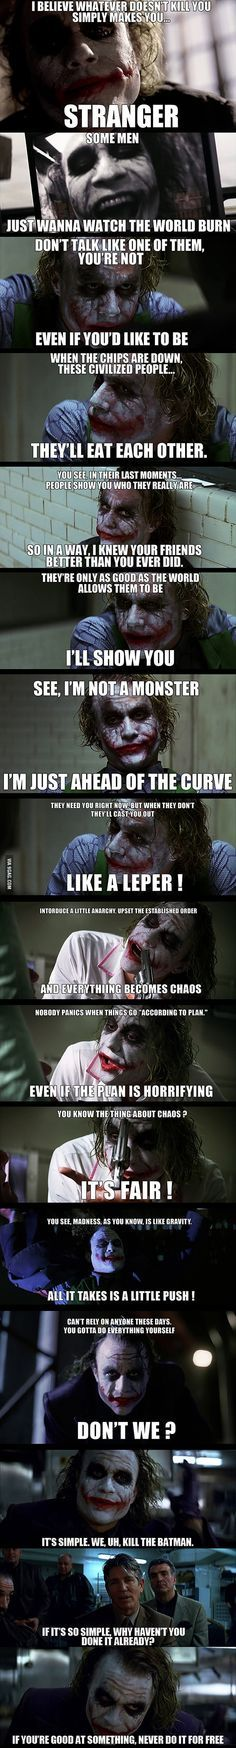 After re-watching The Dark Knight, I realize Joker has a point about humans... Like, its kinda sad and scary.